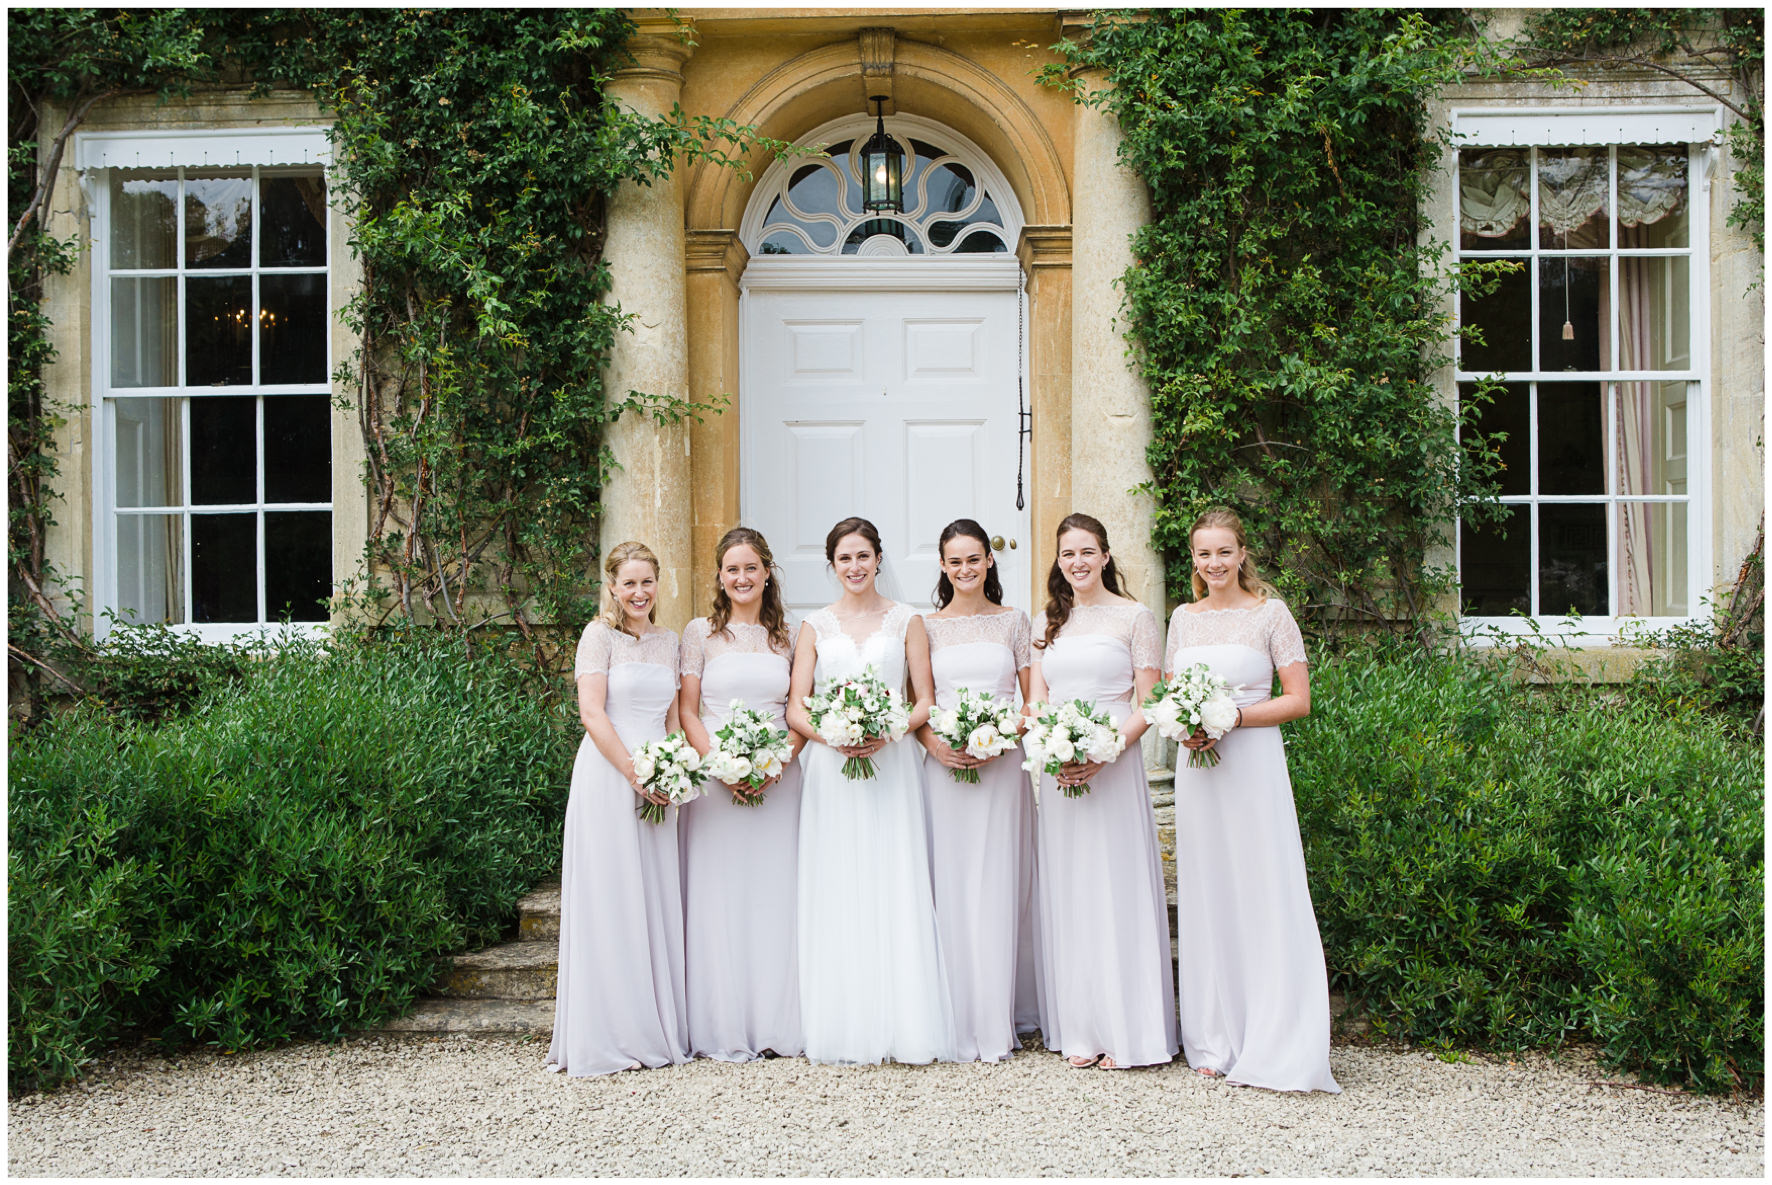 Lucy Davenport Photography, Cornwell Manor, wedding venue, Oxfordshire, Cotswold wedding, bridesmaids, bride, bridal party, girls